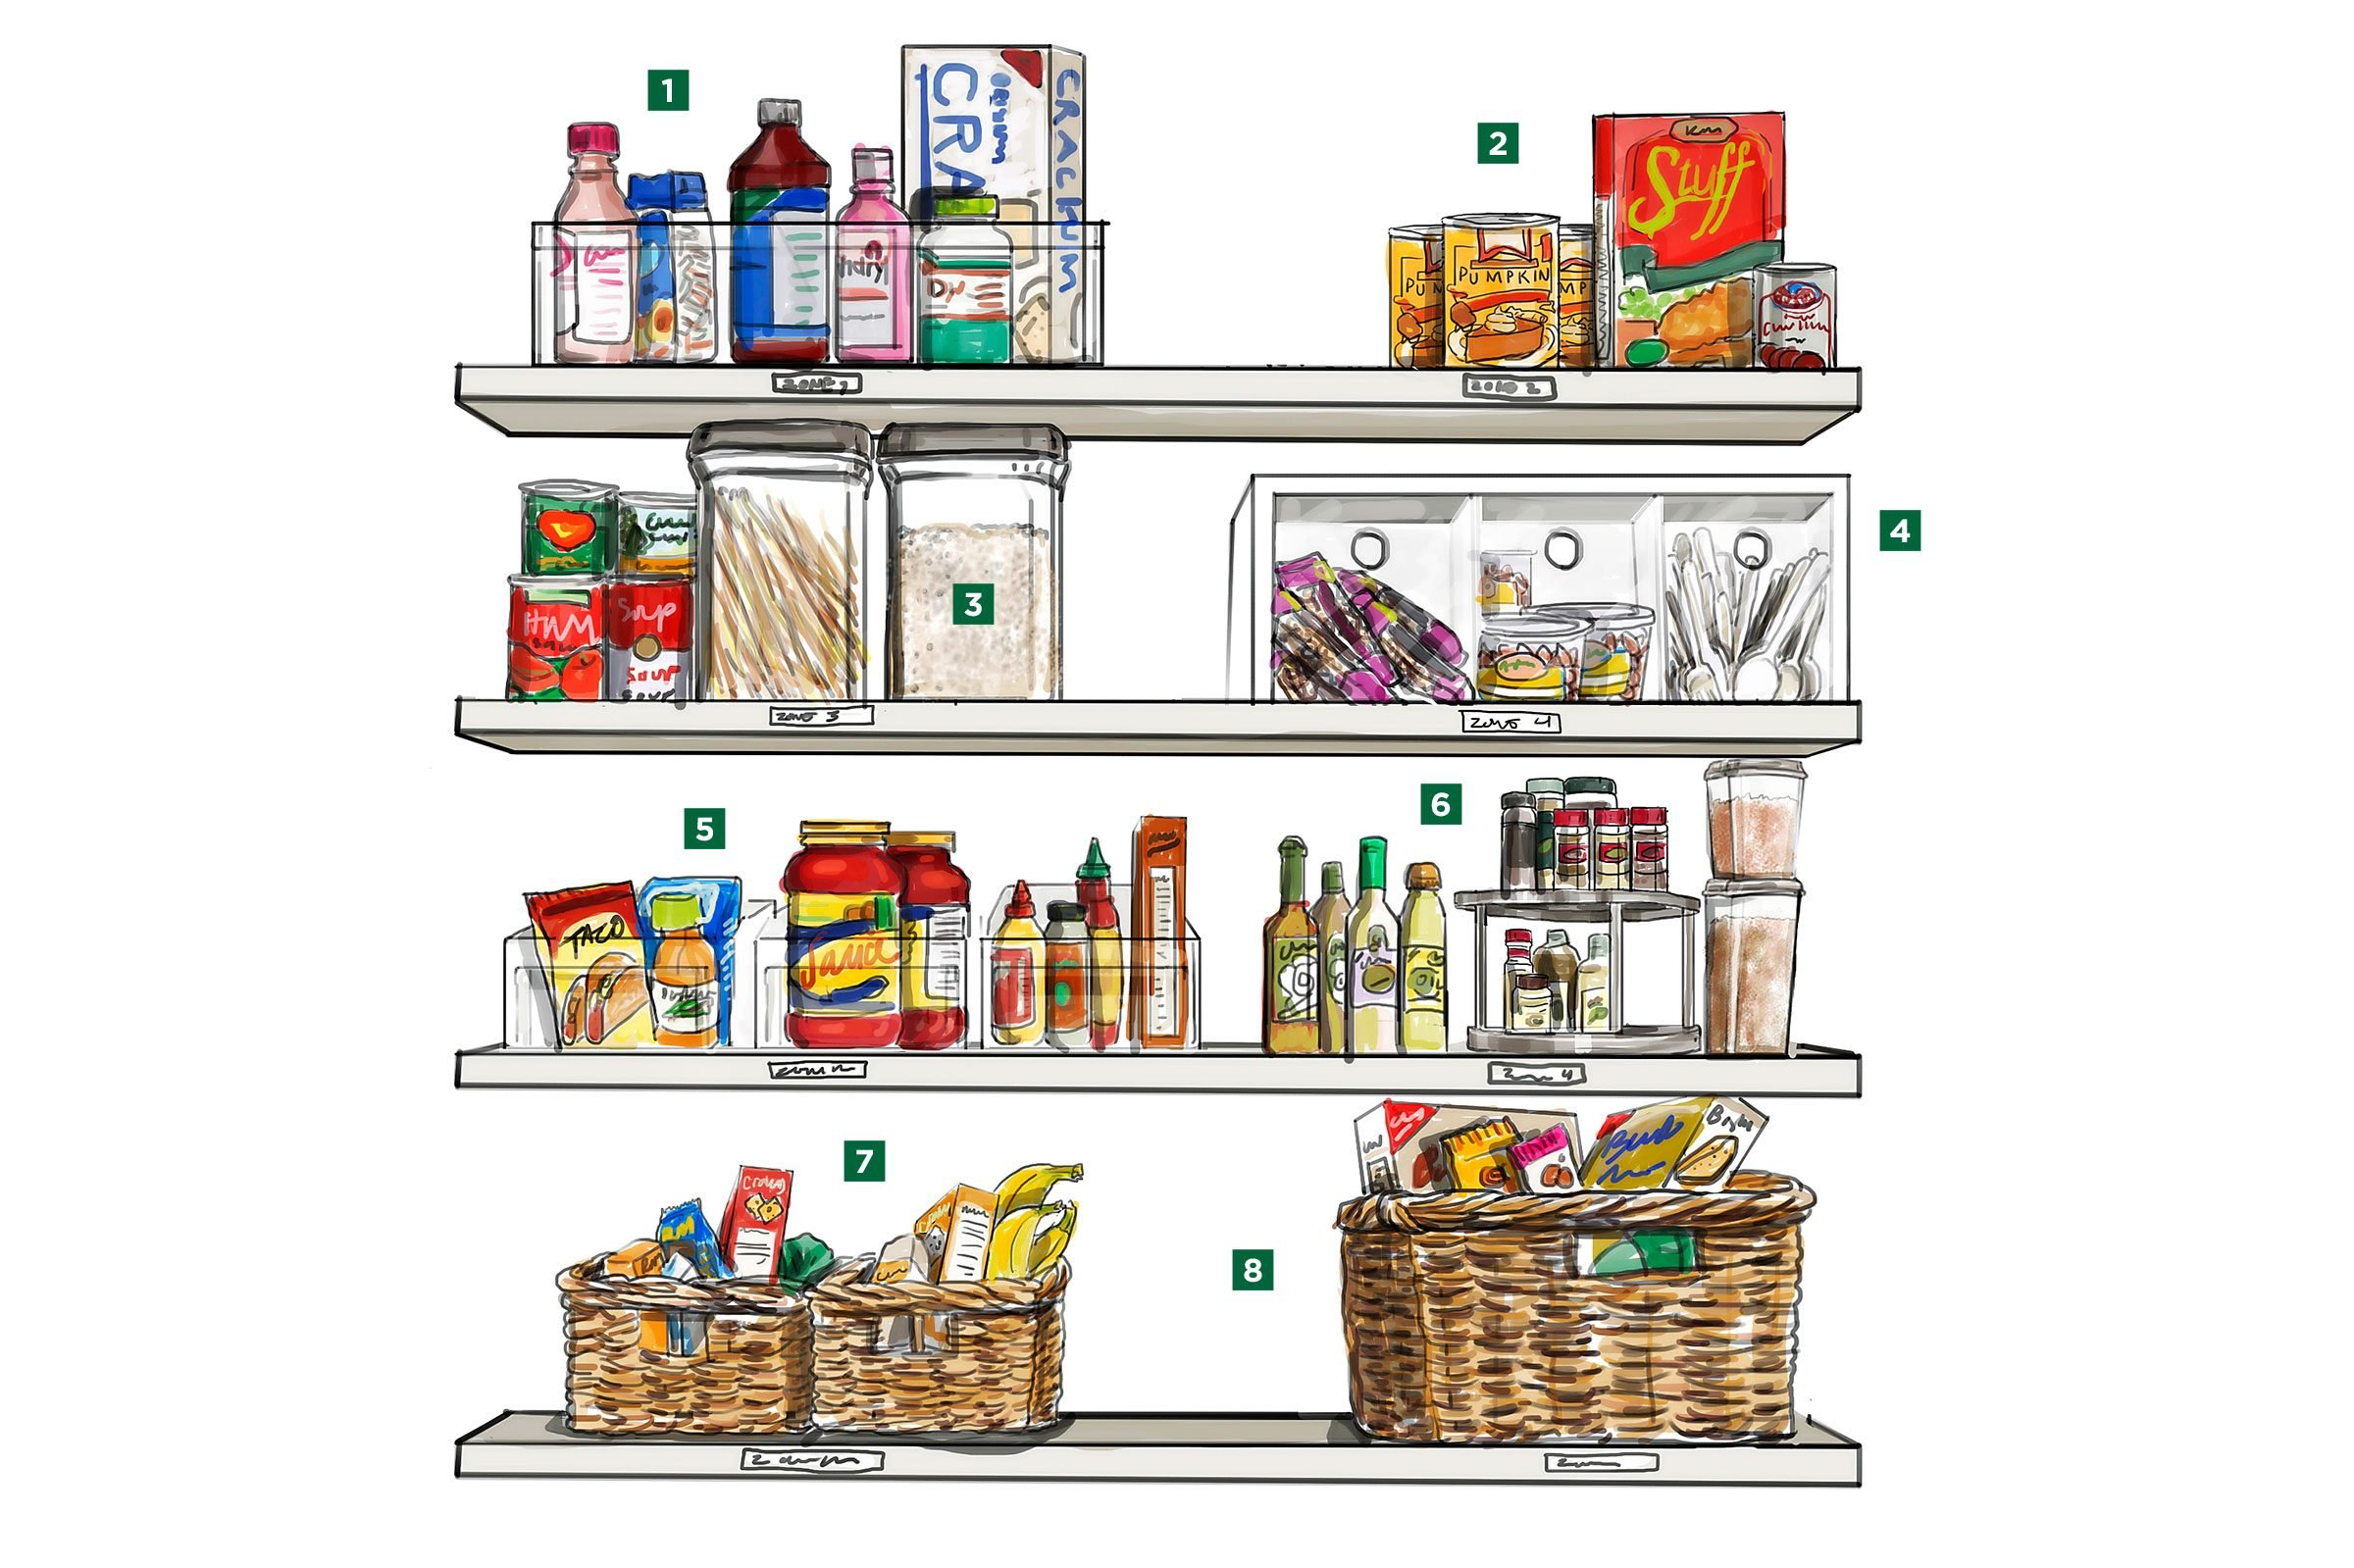 organize your pantry at last - Organized Pantry